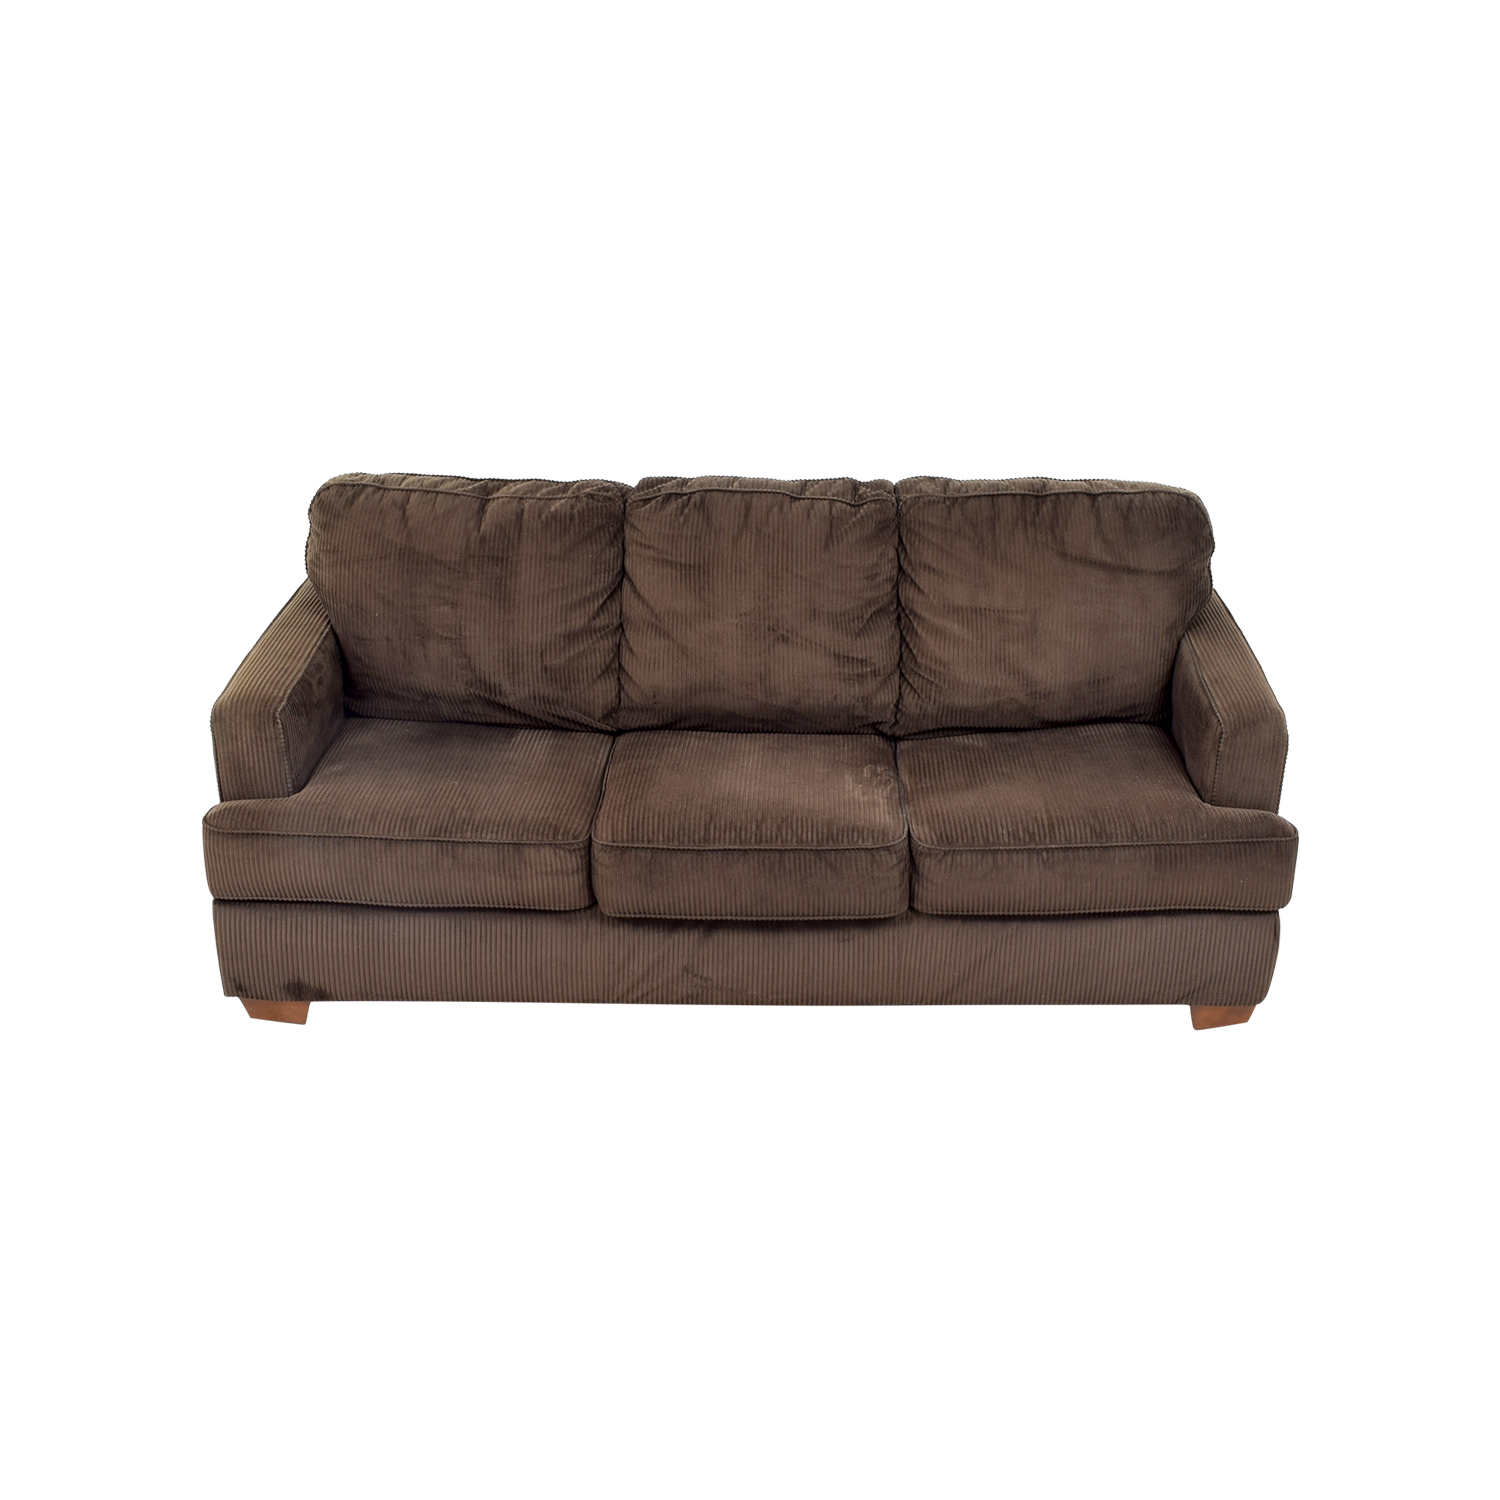 Atmore Chocolate Corduroy Three-Cushion Sofa / Classic Sofas